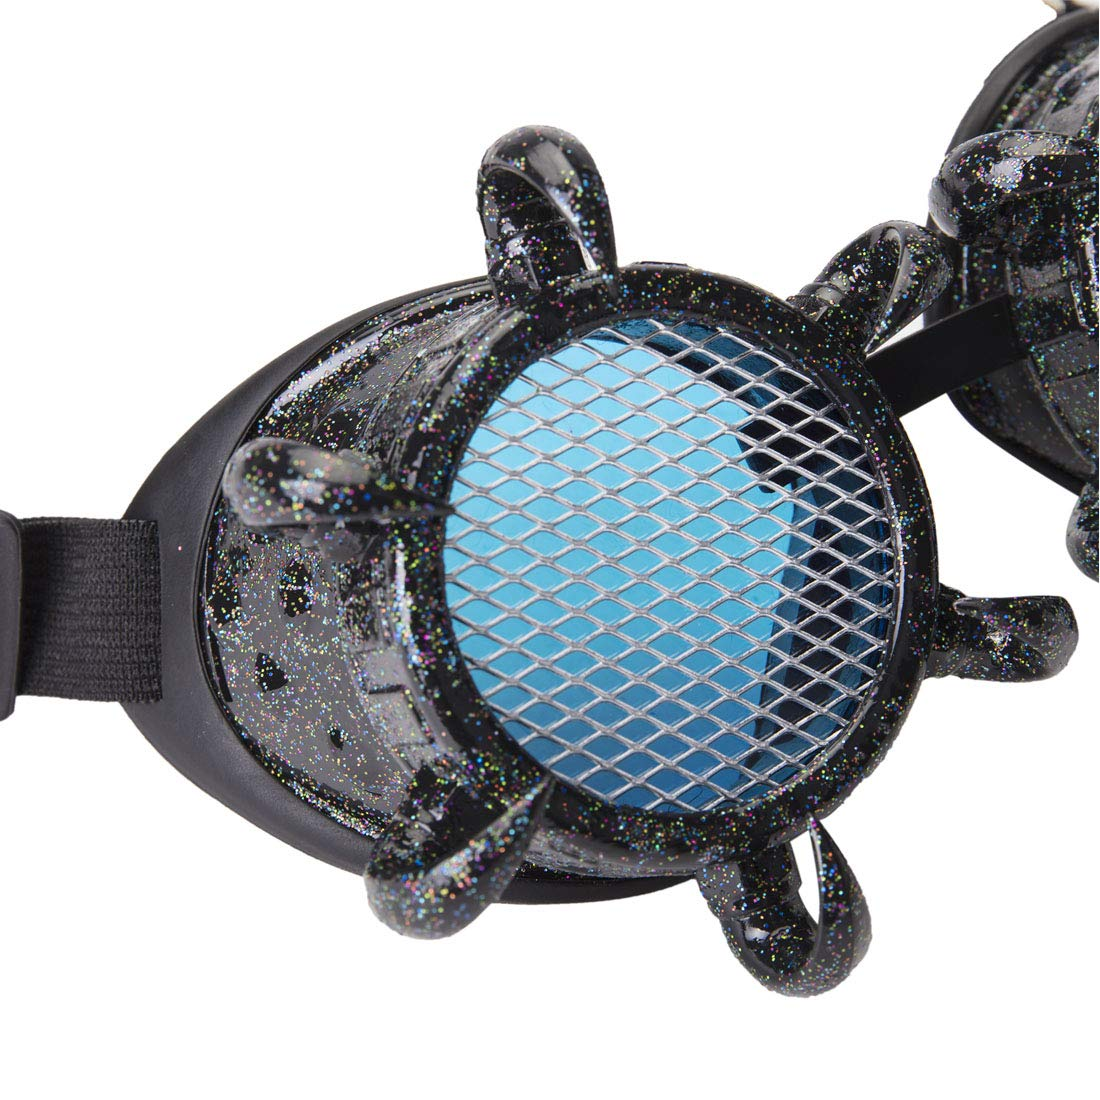 Steampunk Vintage Retro Welding Cyber Goggles Glasses Eyewear with Barbed Wire